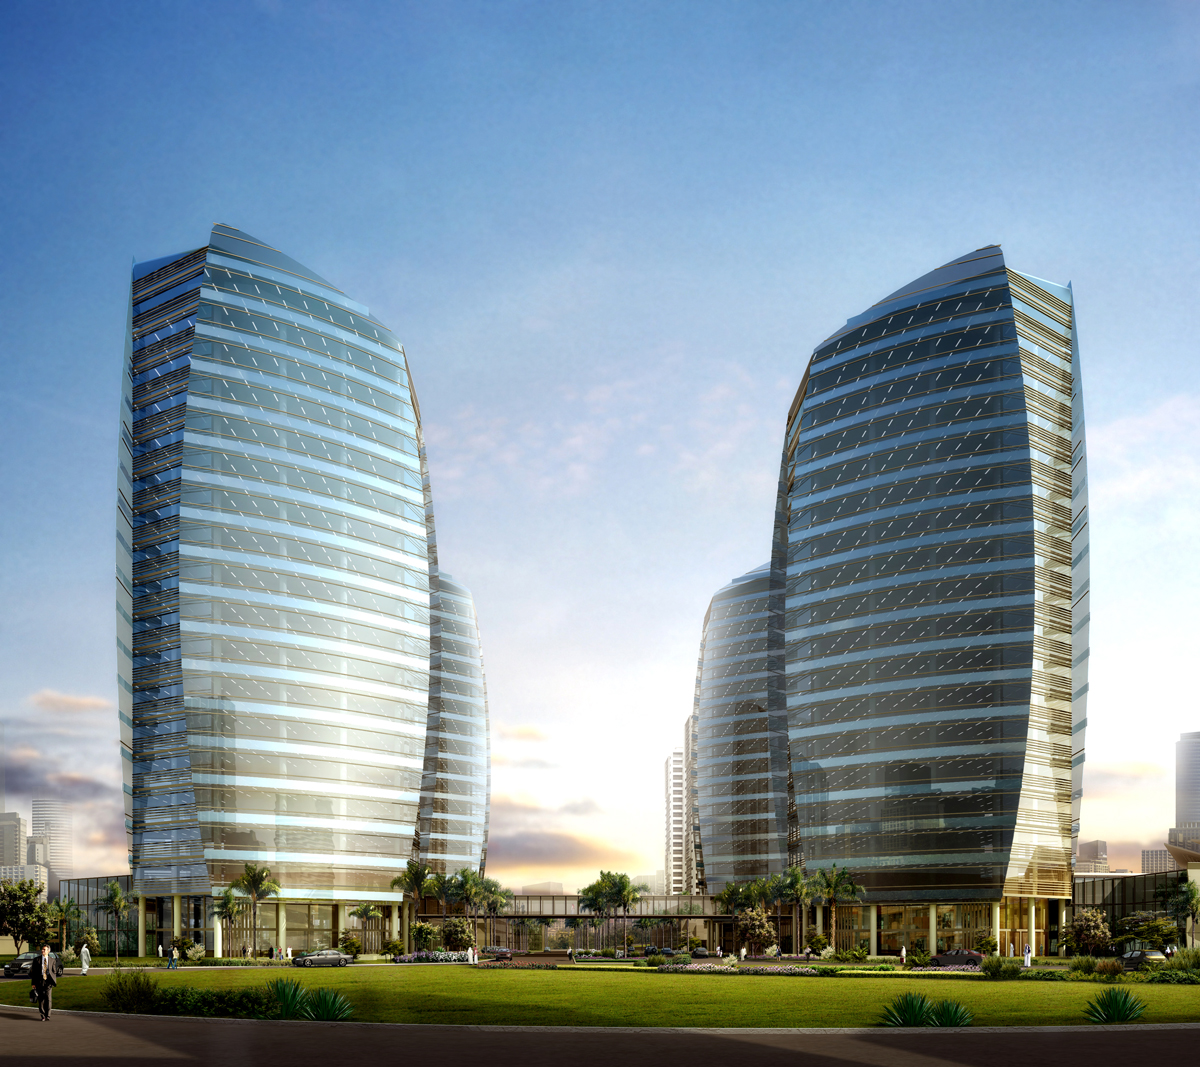 photorealistic high rise tower rendering